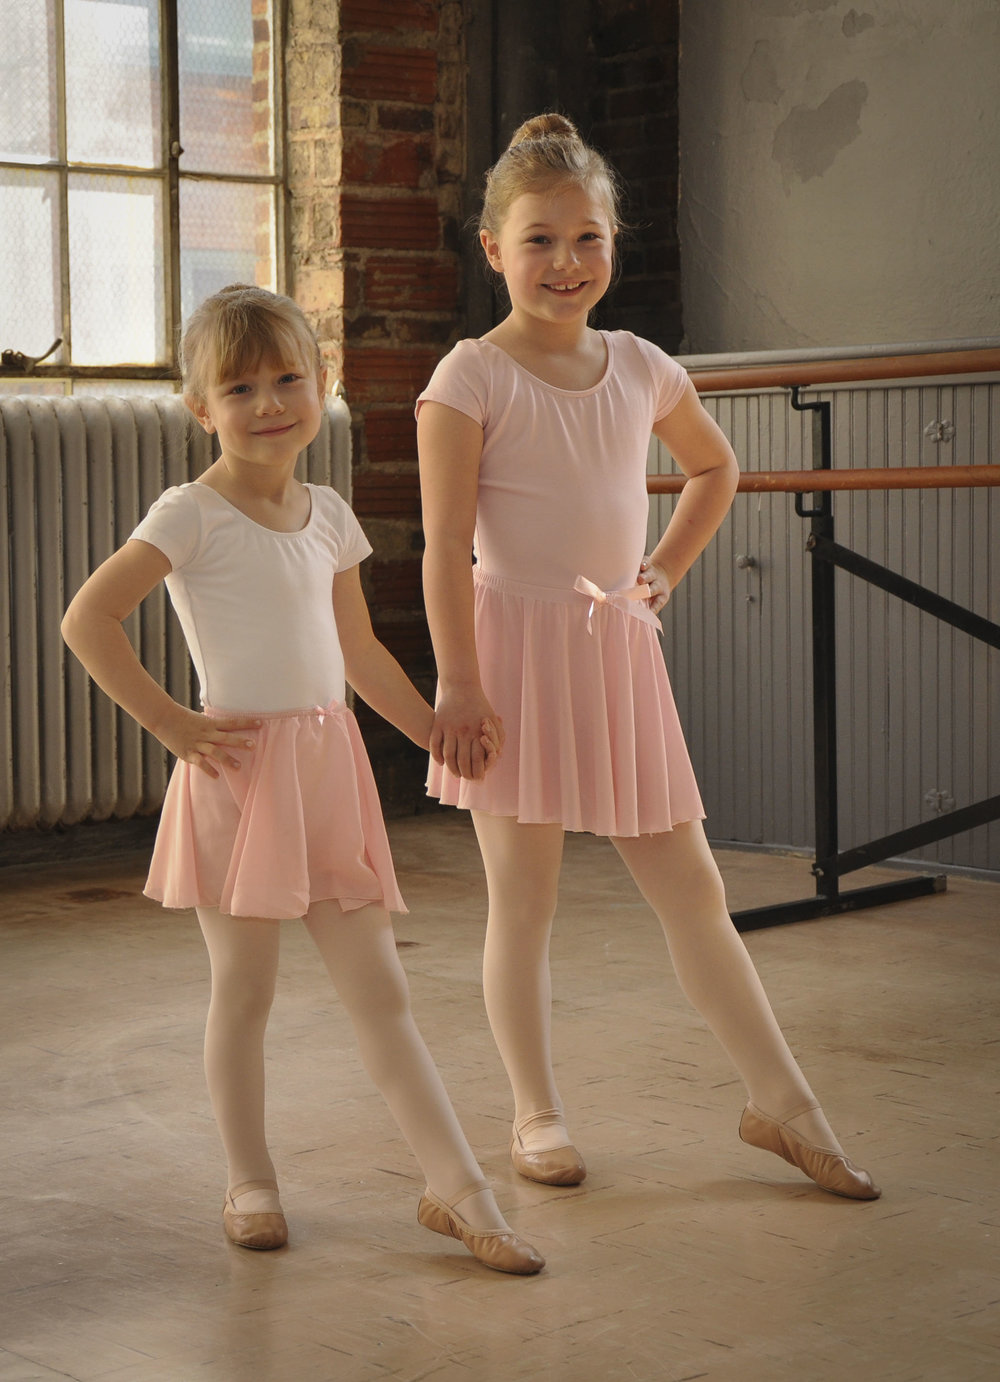 leap 'n learn for 5 year olds - In LNL 5 dance classes focus on pre-ballet at a primary level, creative movement concepts, and pretend play with greater complexity using the Leap 'N Learn curriculum. Students continue to expand their vocabulary in French terminology of ballet terms. During class time exercises used are to help increase the child's musical awareness, balance, agility, and gross-motor development is continued to be worked on.CLASS LENGTH & FREQUENCY60 Minutes, Once a weekREQUIREMENTSChildren must be 5 years old, attend class once a week, and follow the specified dress code